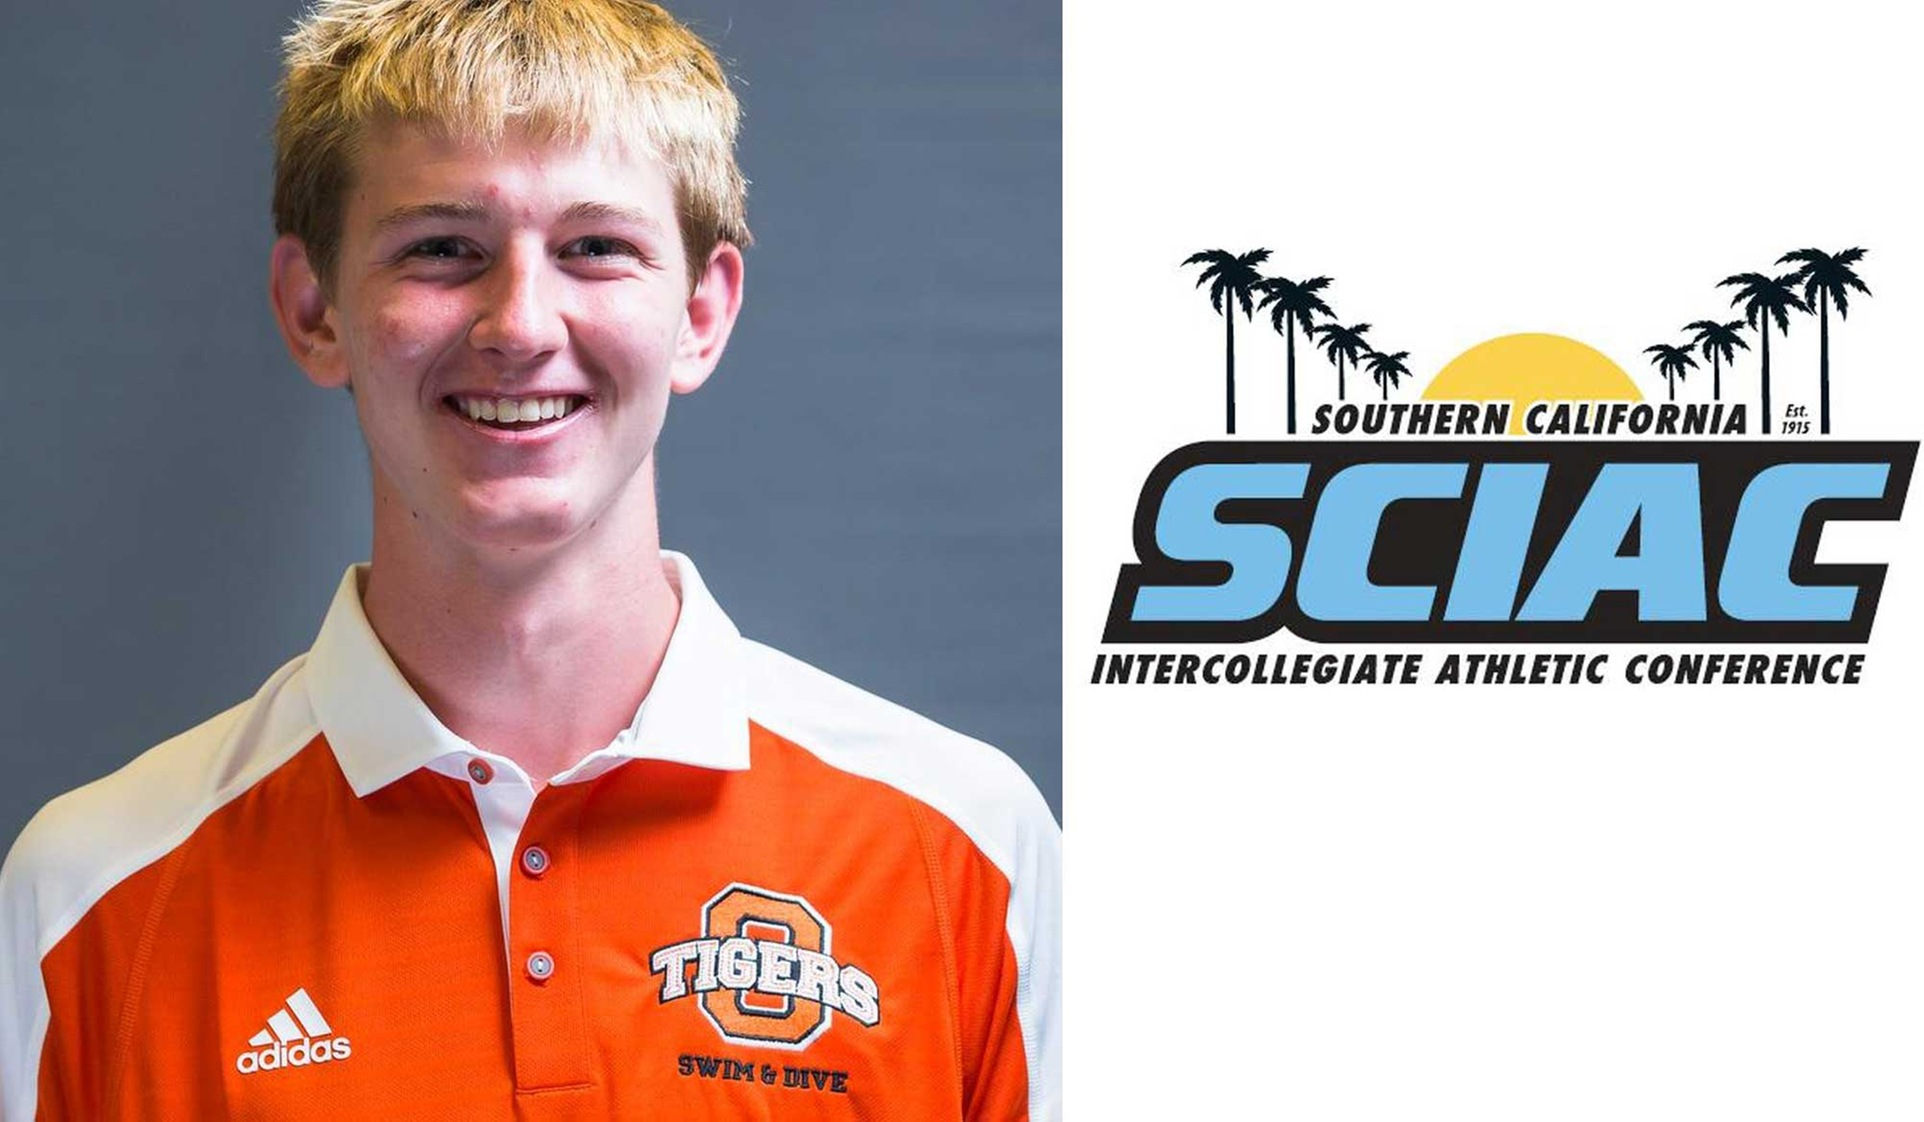 Sebastian Named SCIAC Swimmer of the Week